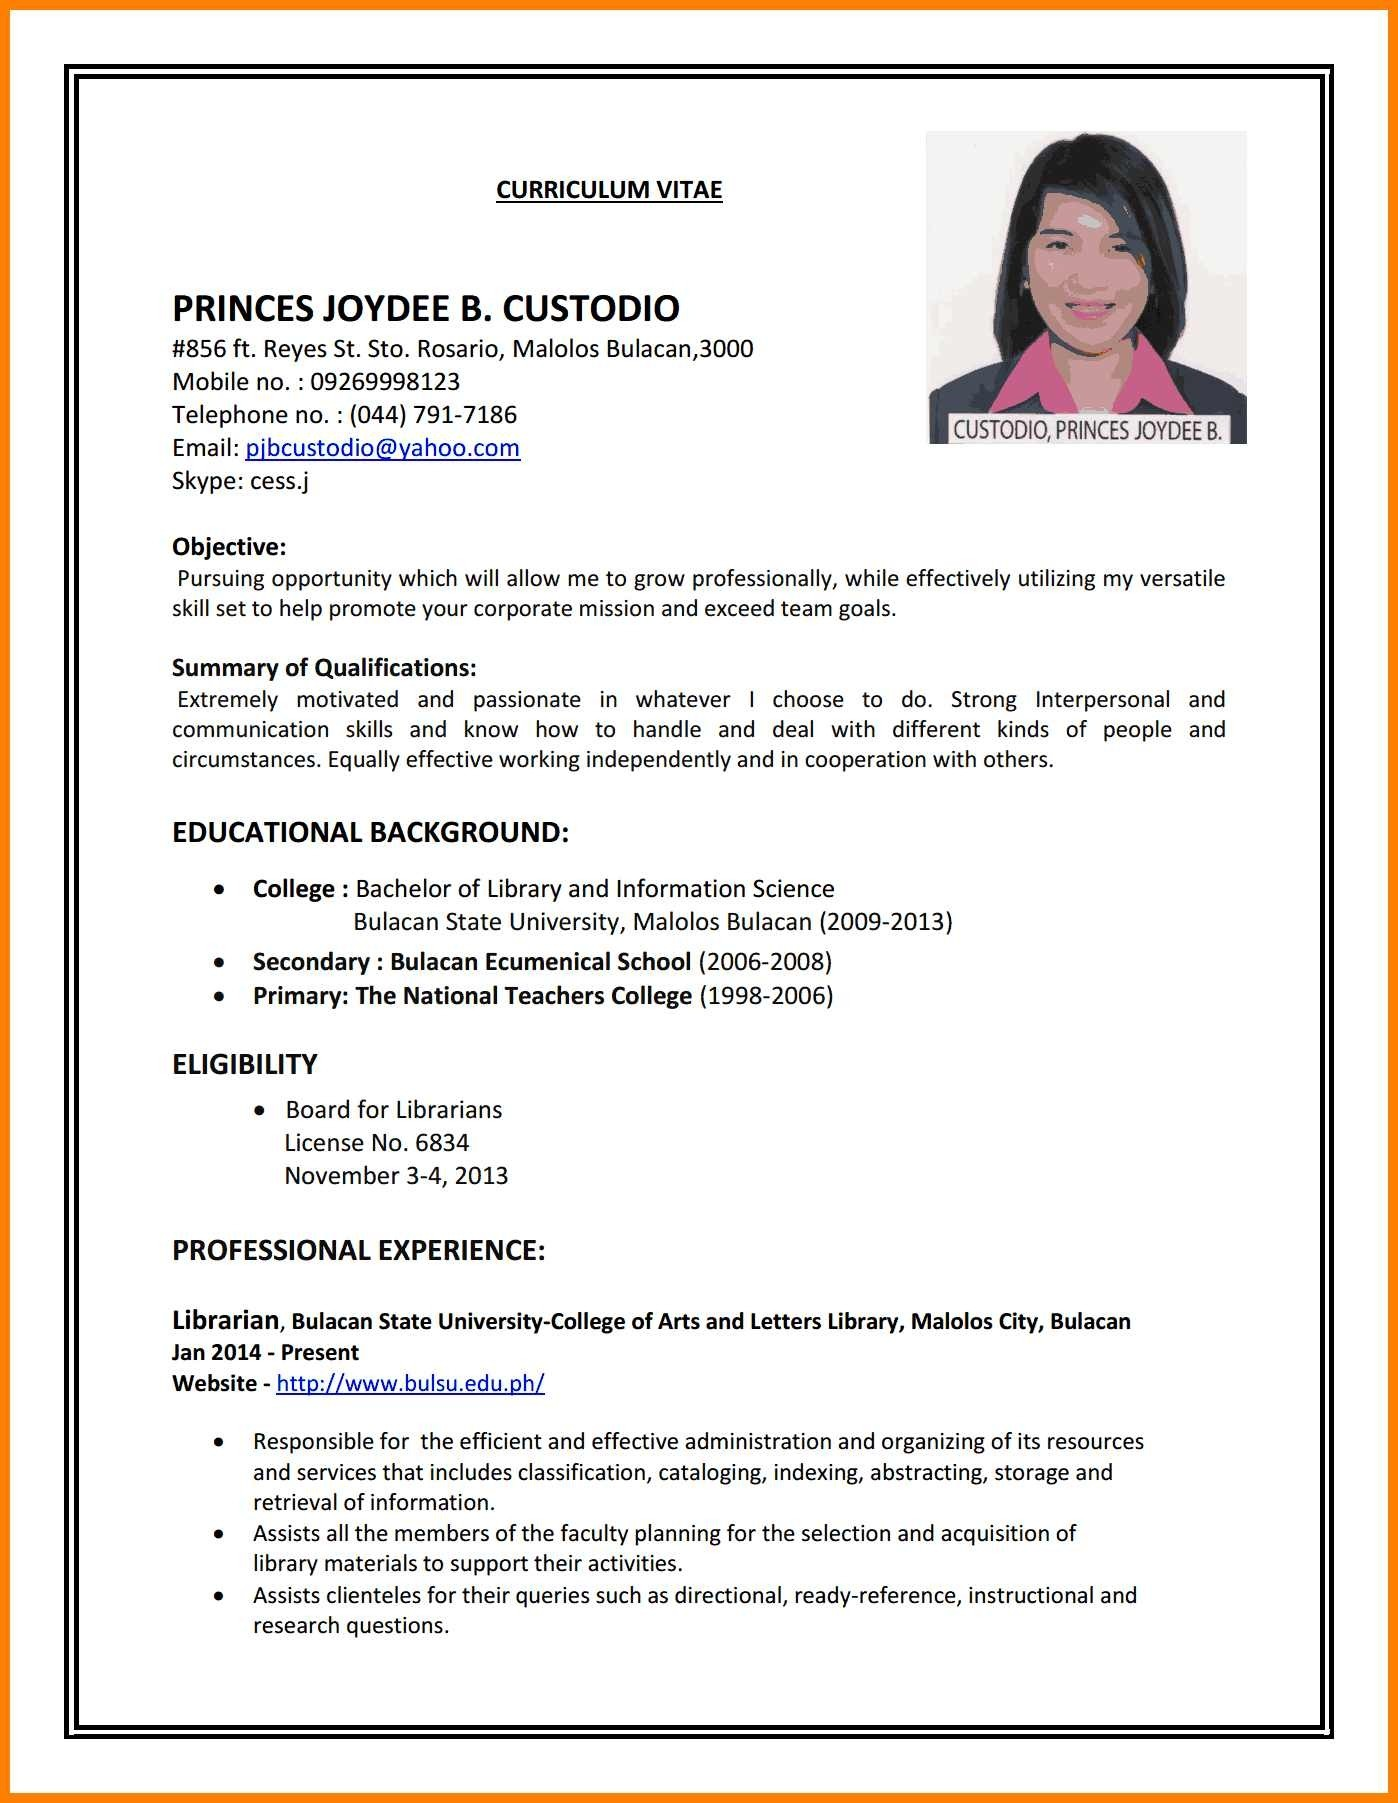 How To Do A Resume Cover Letter How To Make Resume For Job Application Free With No Experience Write Cv An At How Do I Do A Resume how to do a resume|wikiresume.com